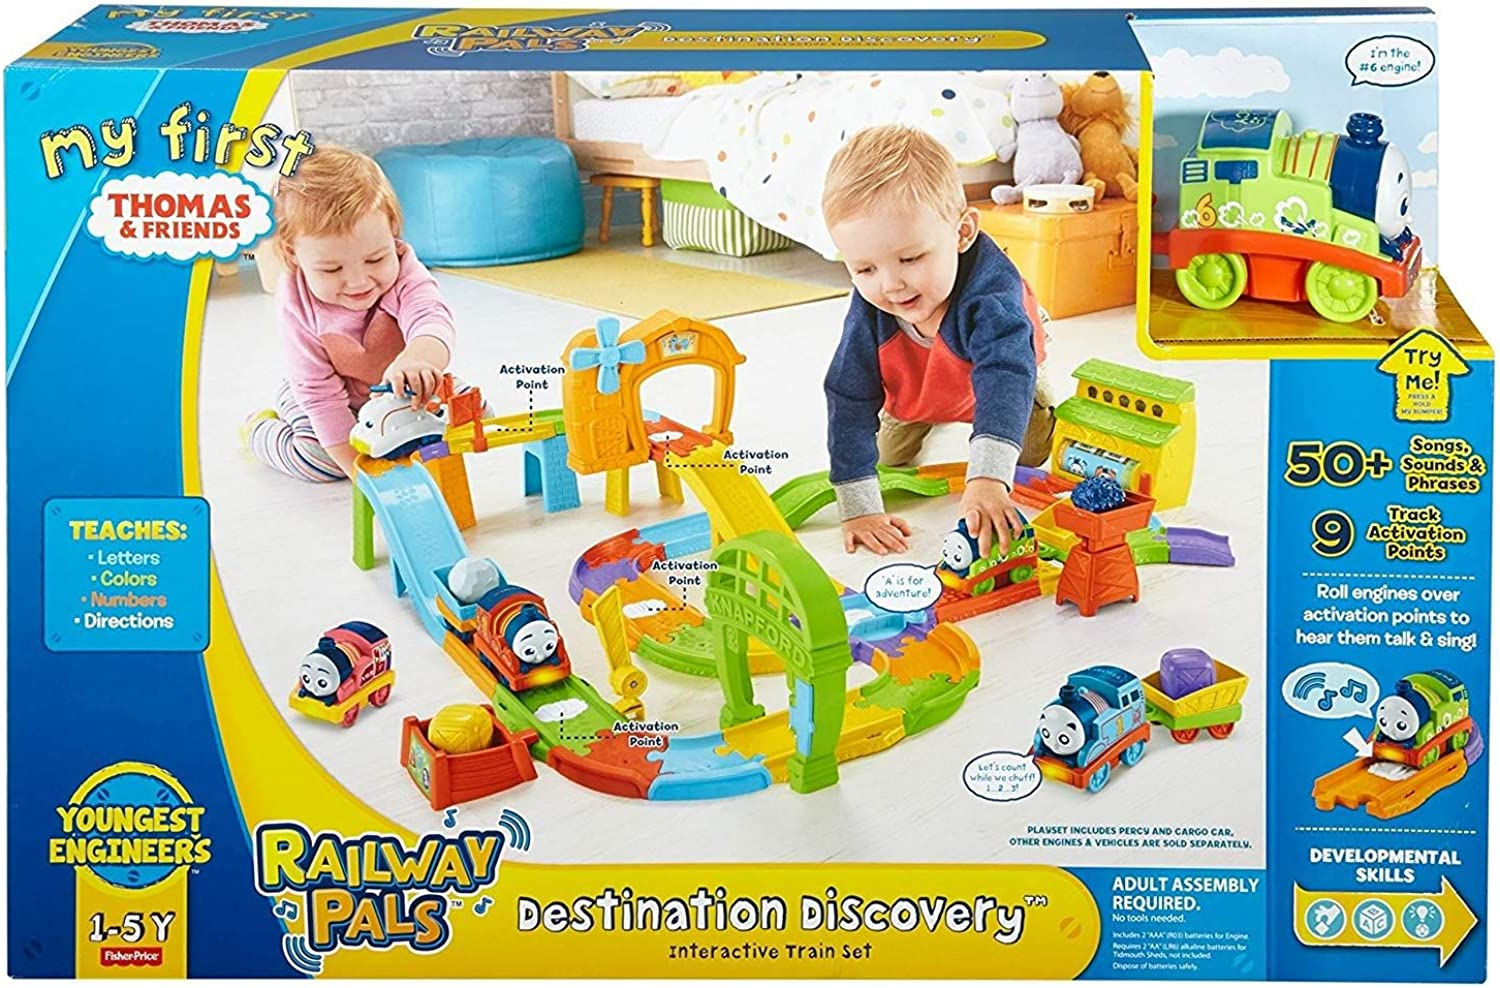 My First Thomas & Friends Railway Pals Destination Discovery